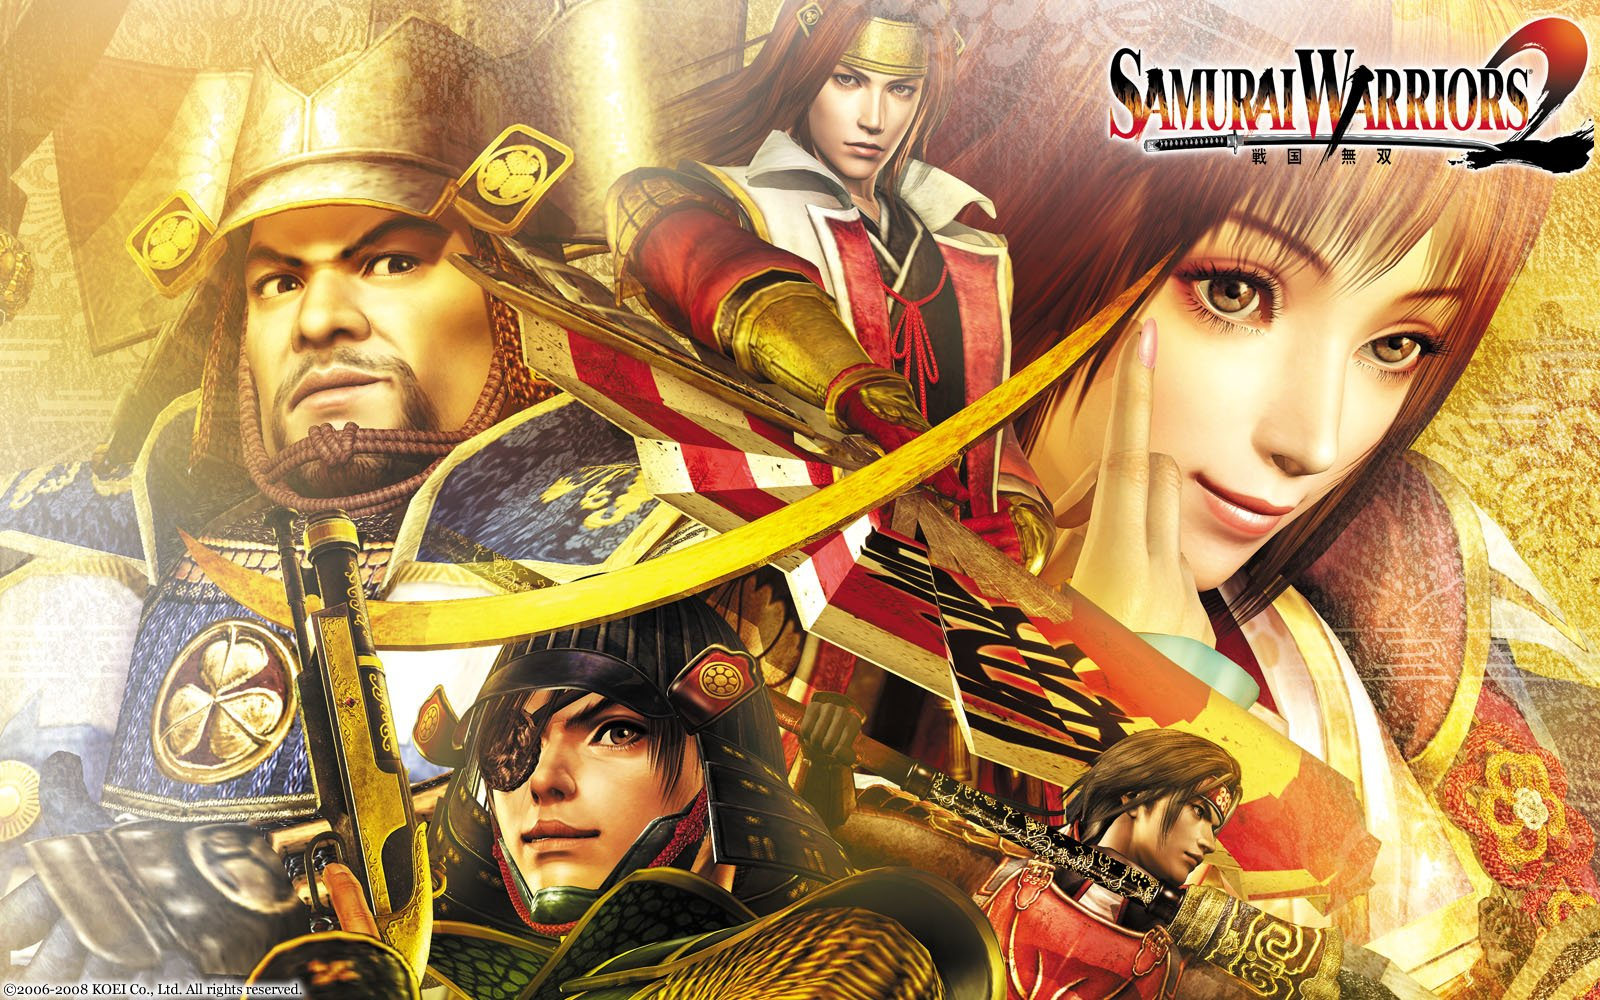 Samurai Warriors 2 Fondo De Pantalla And Fondo De Escritorio